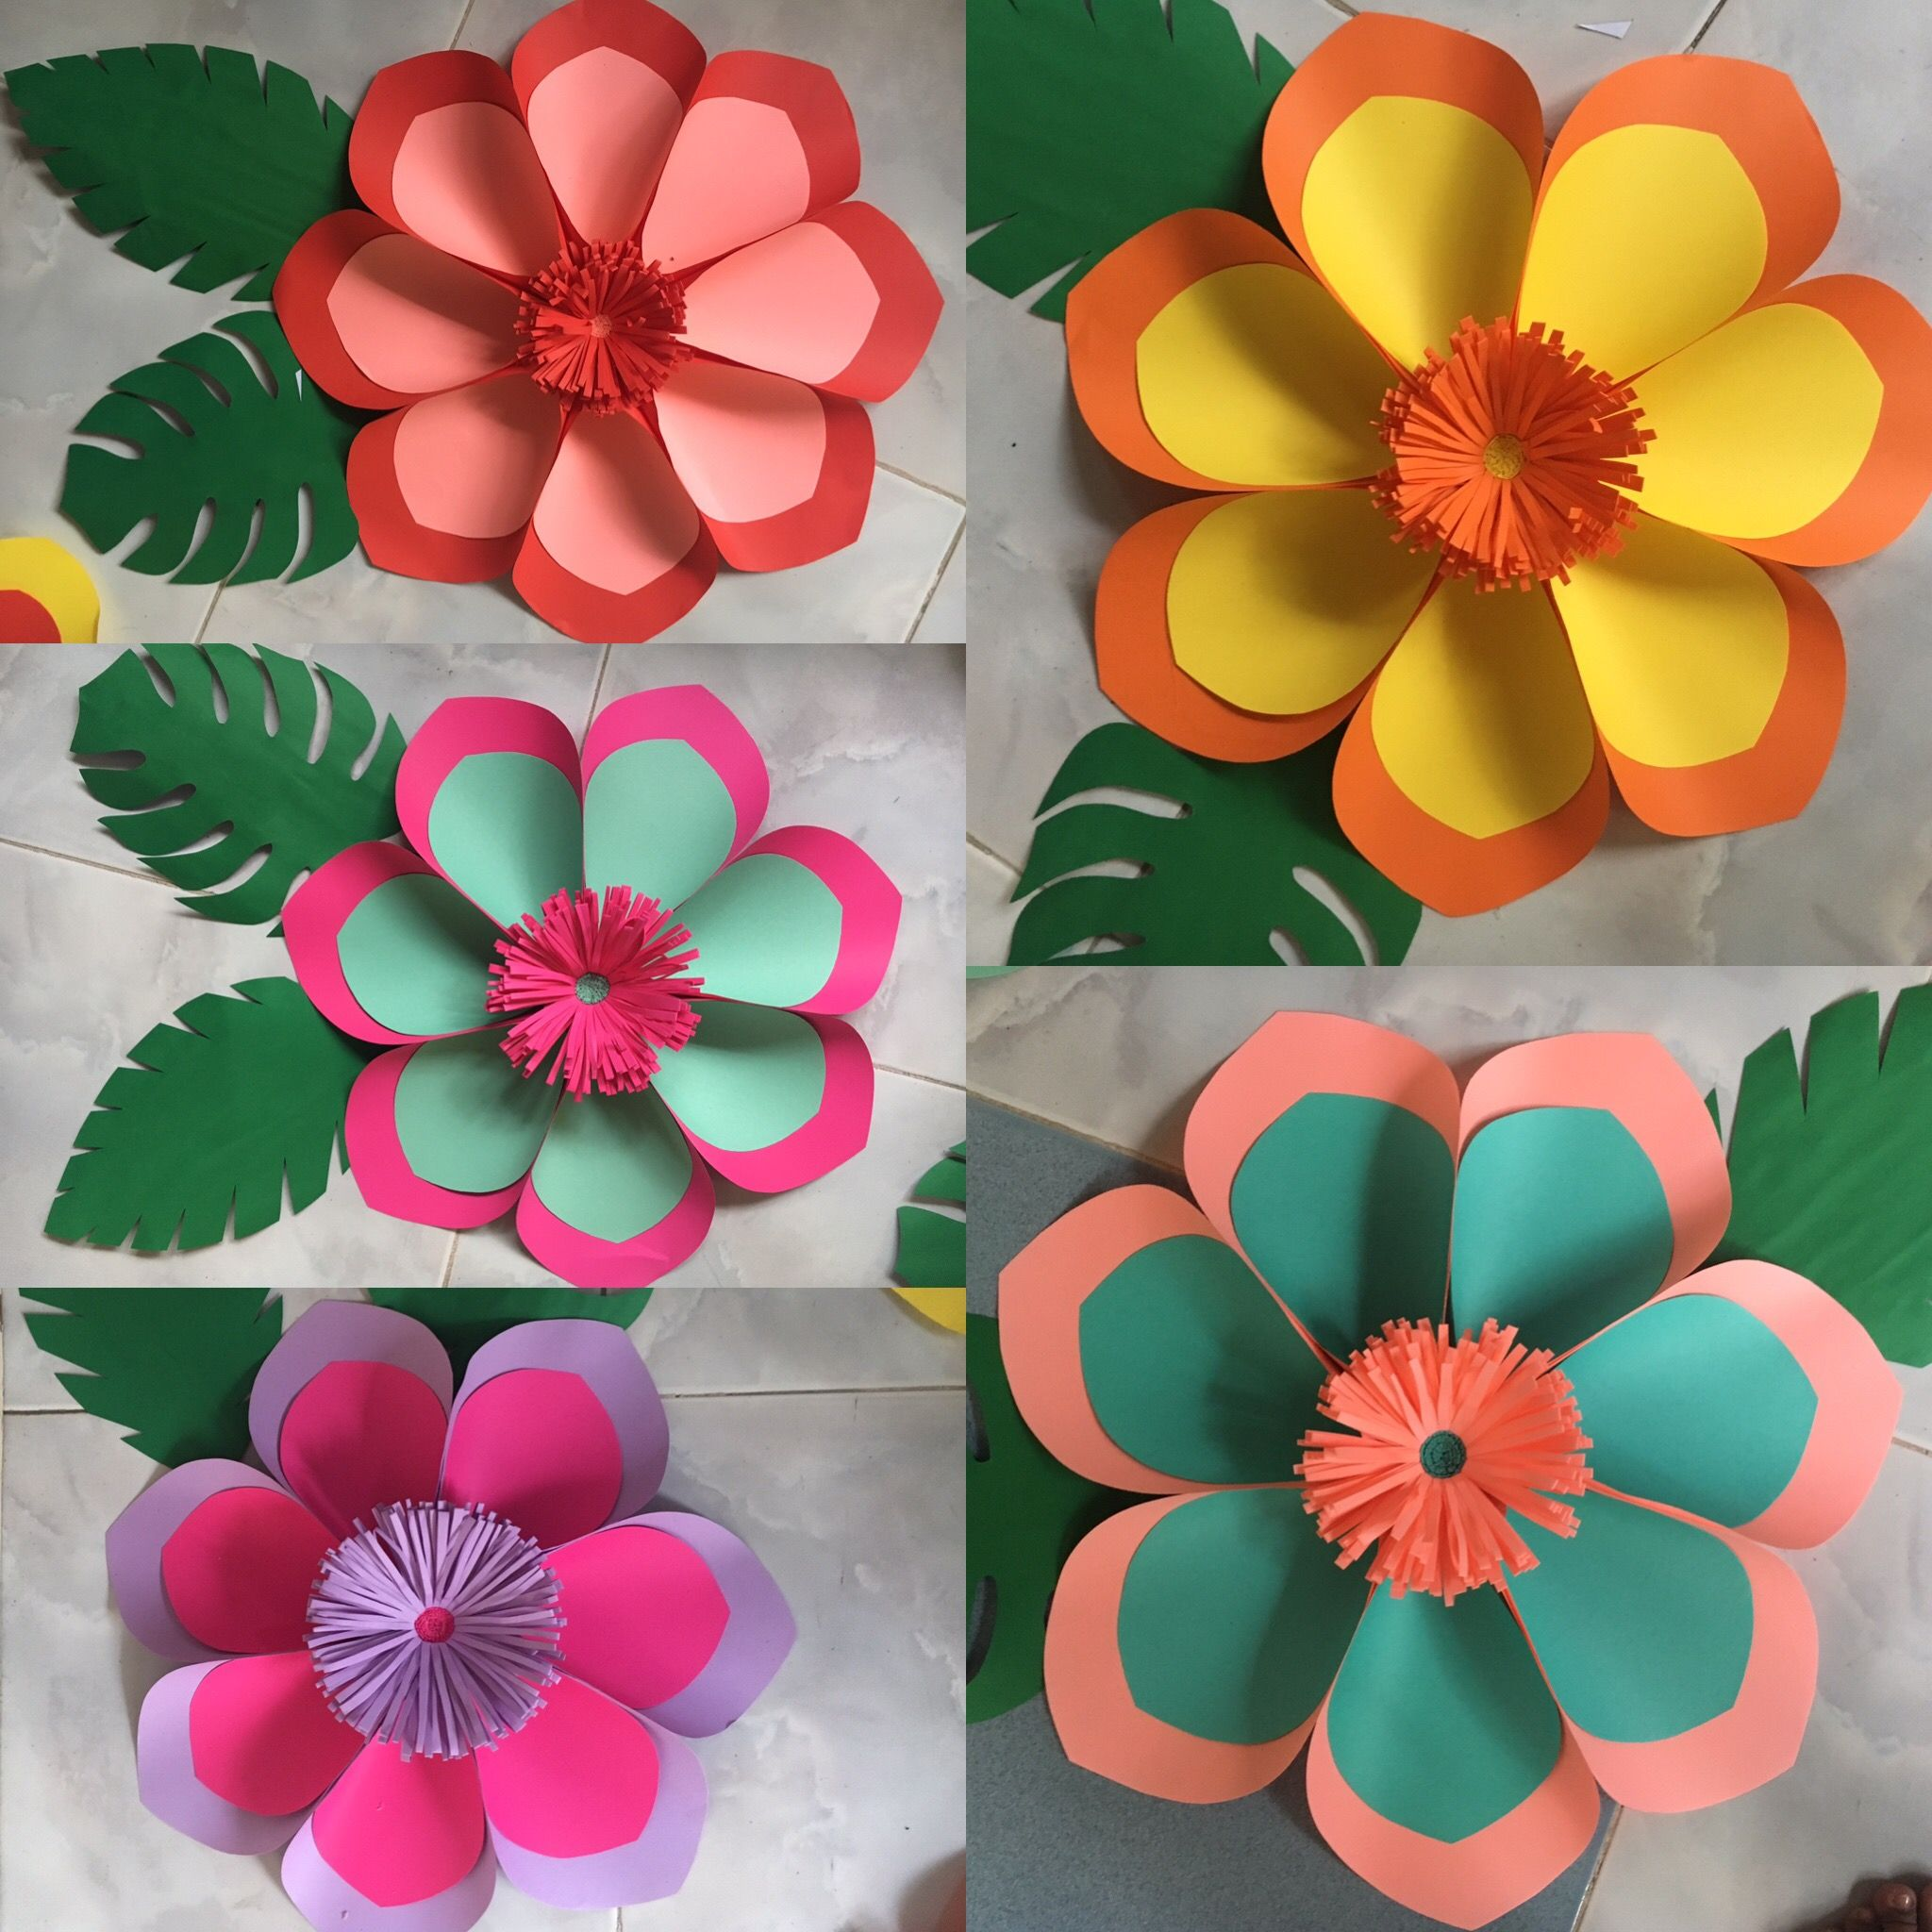 Hawaiian paper flower by gellediy hand made paper flower by gellediy hawaiian paper flower by gellediy hand made paper flower by gellediy nursepreneur sideline passion pm me for inquiries izmirmasajfo